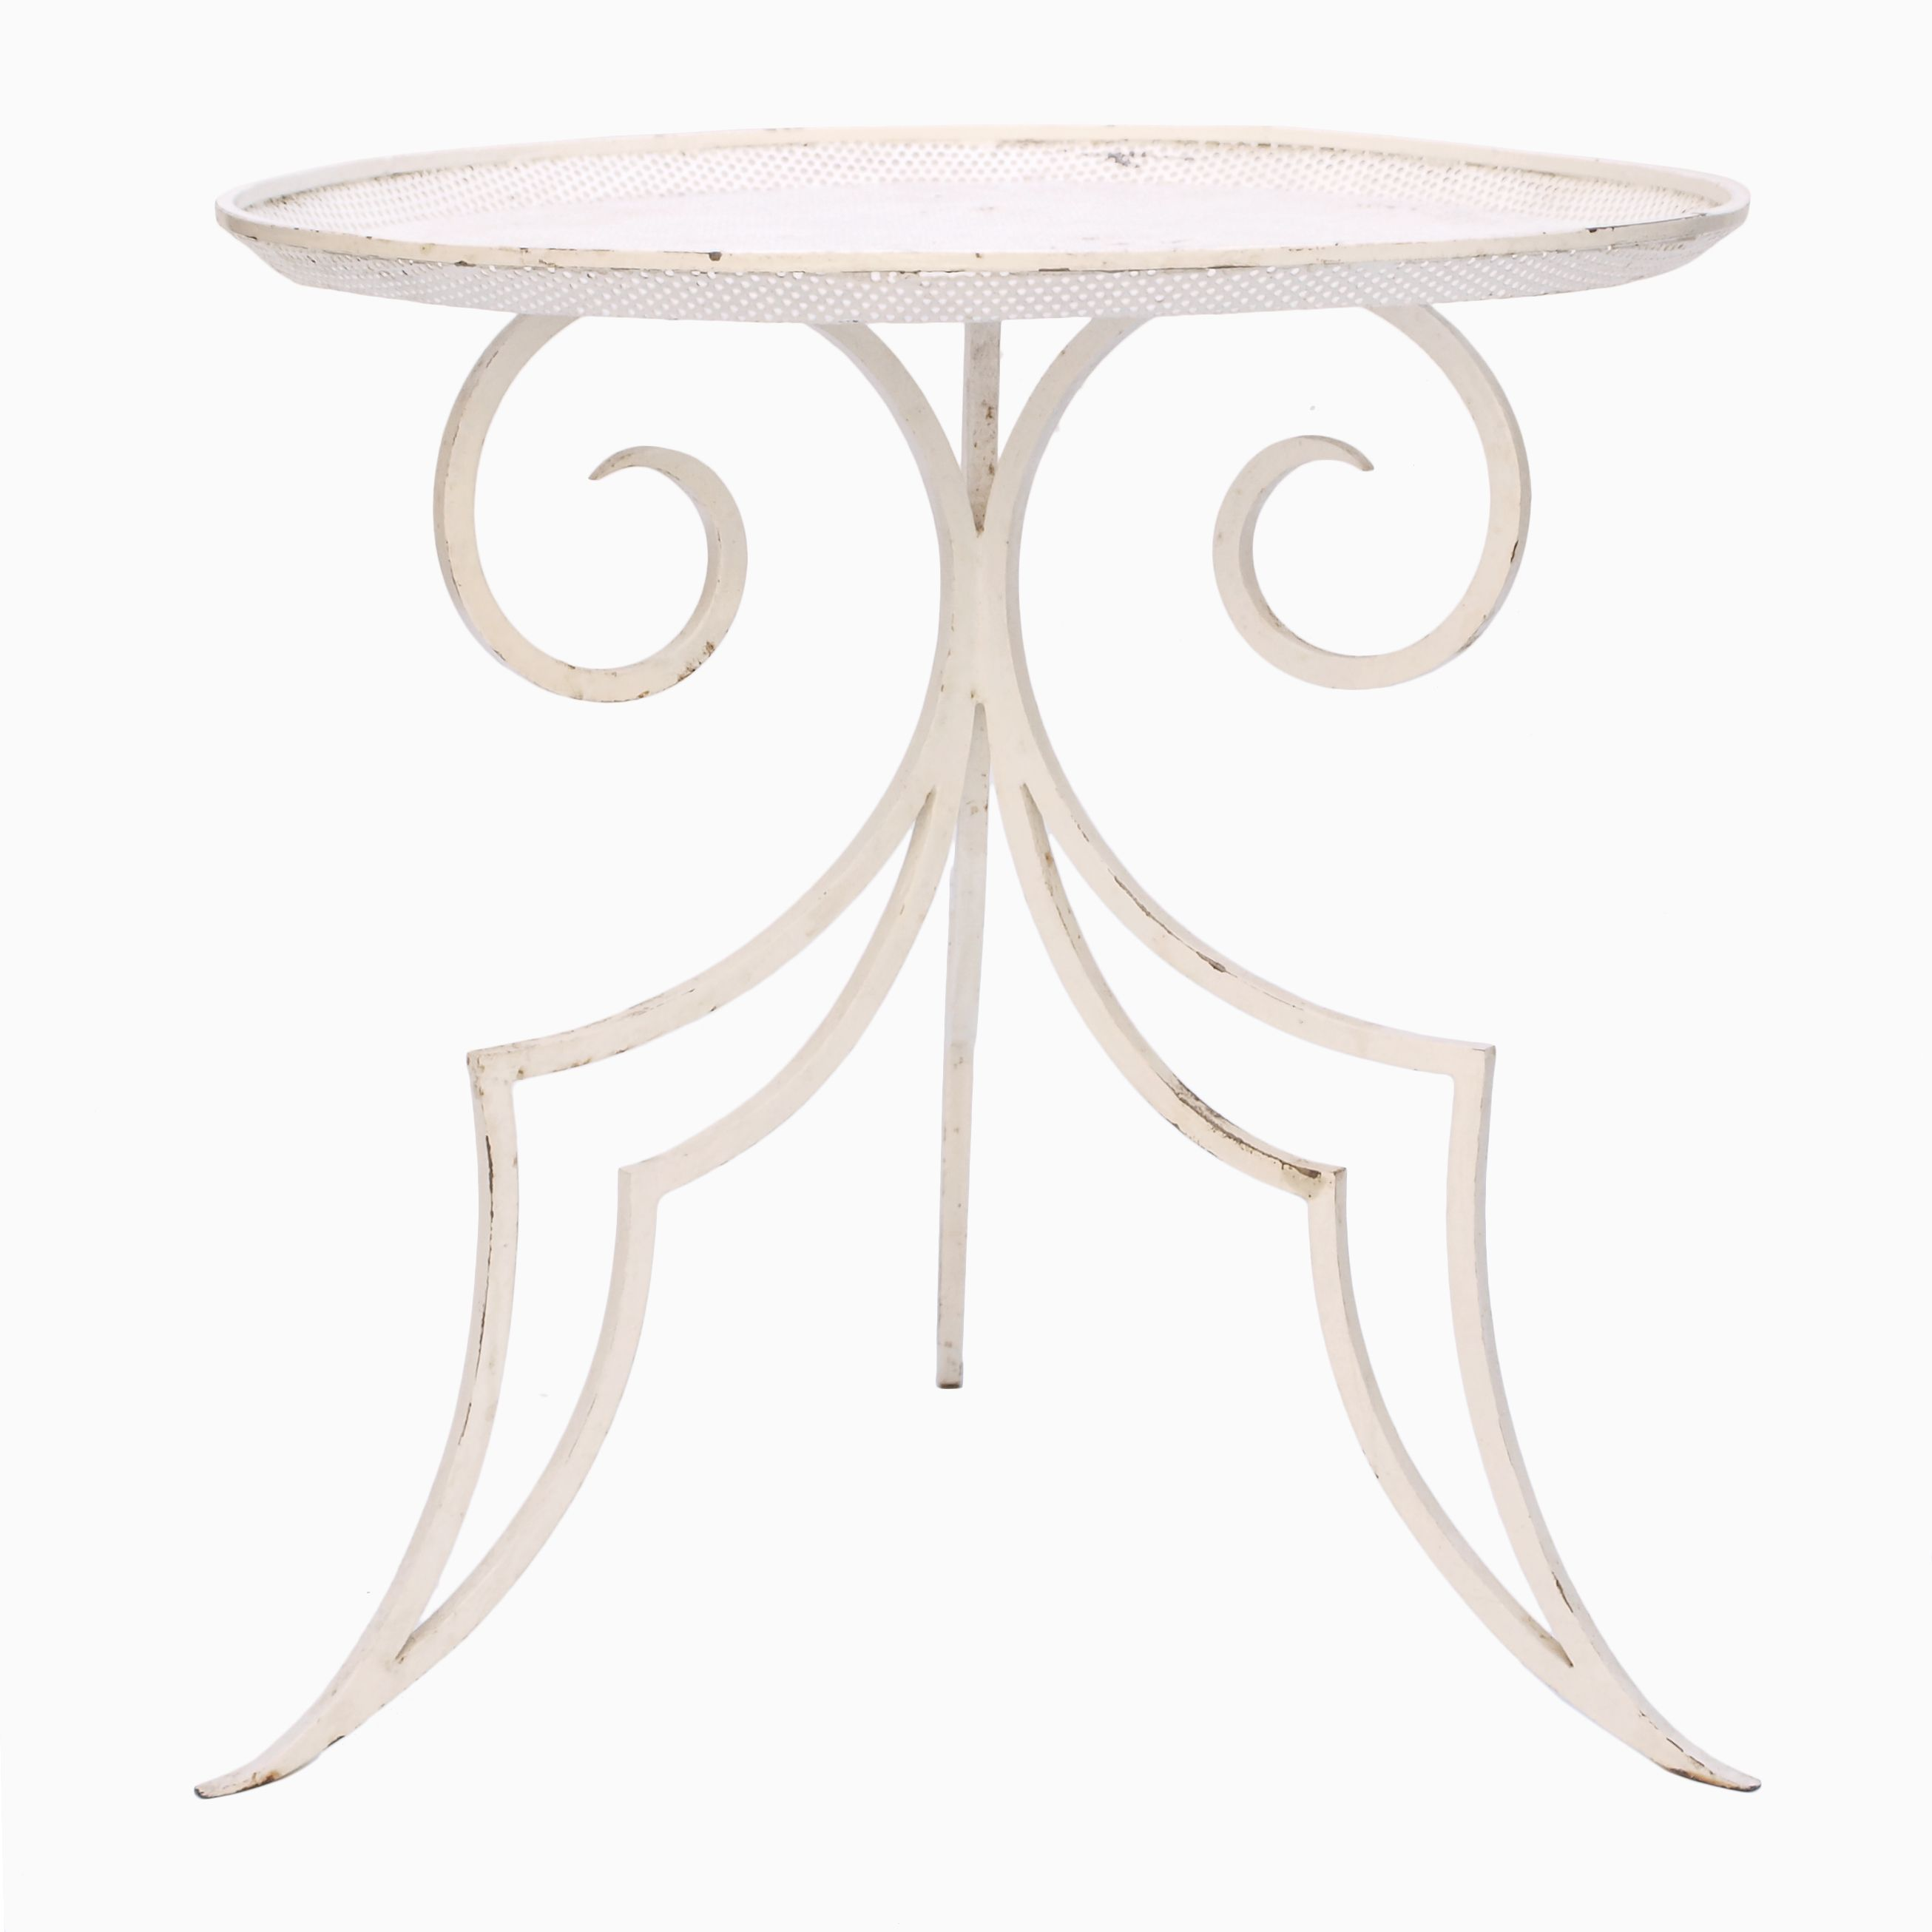 A 1940s French Wrought Iron Side Table